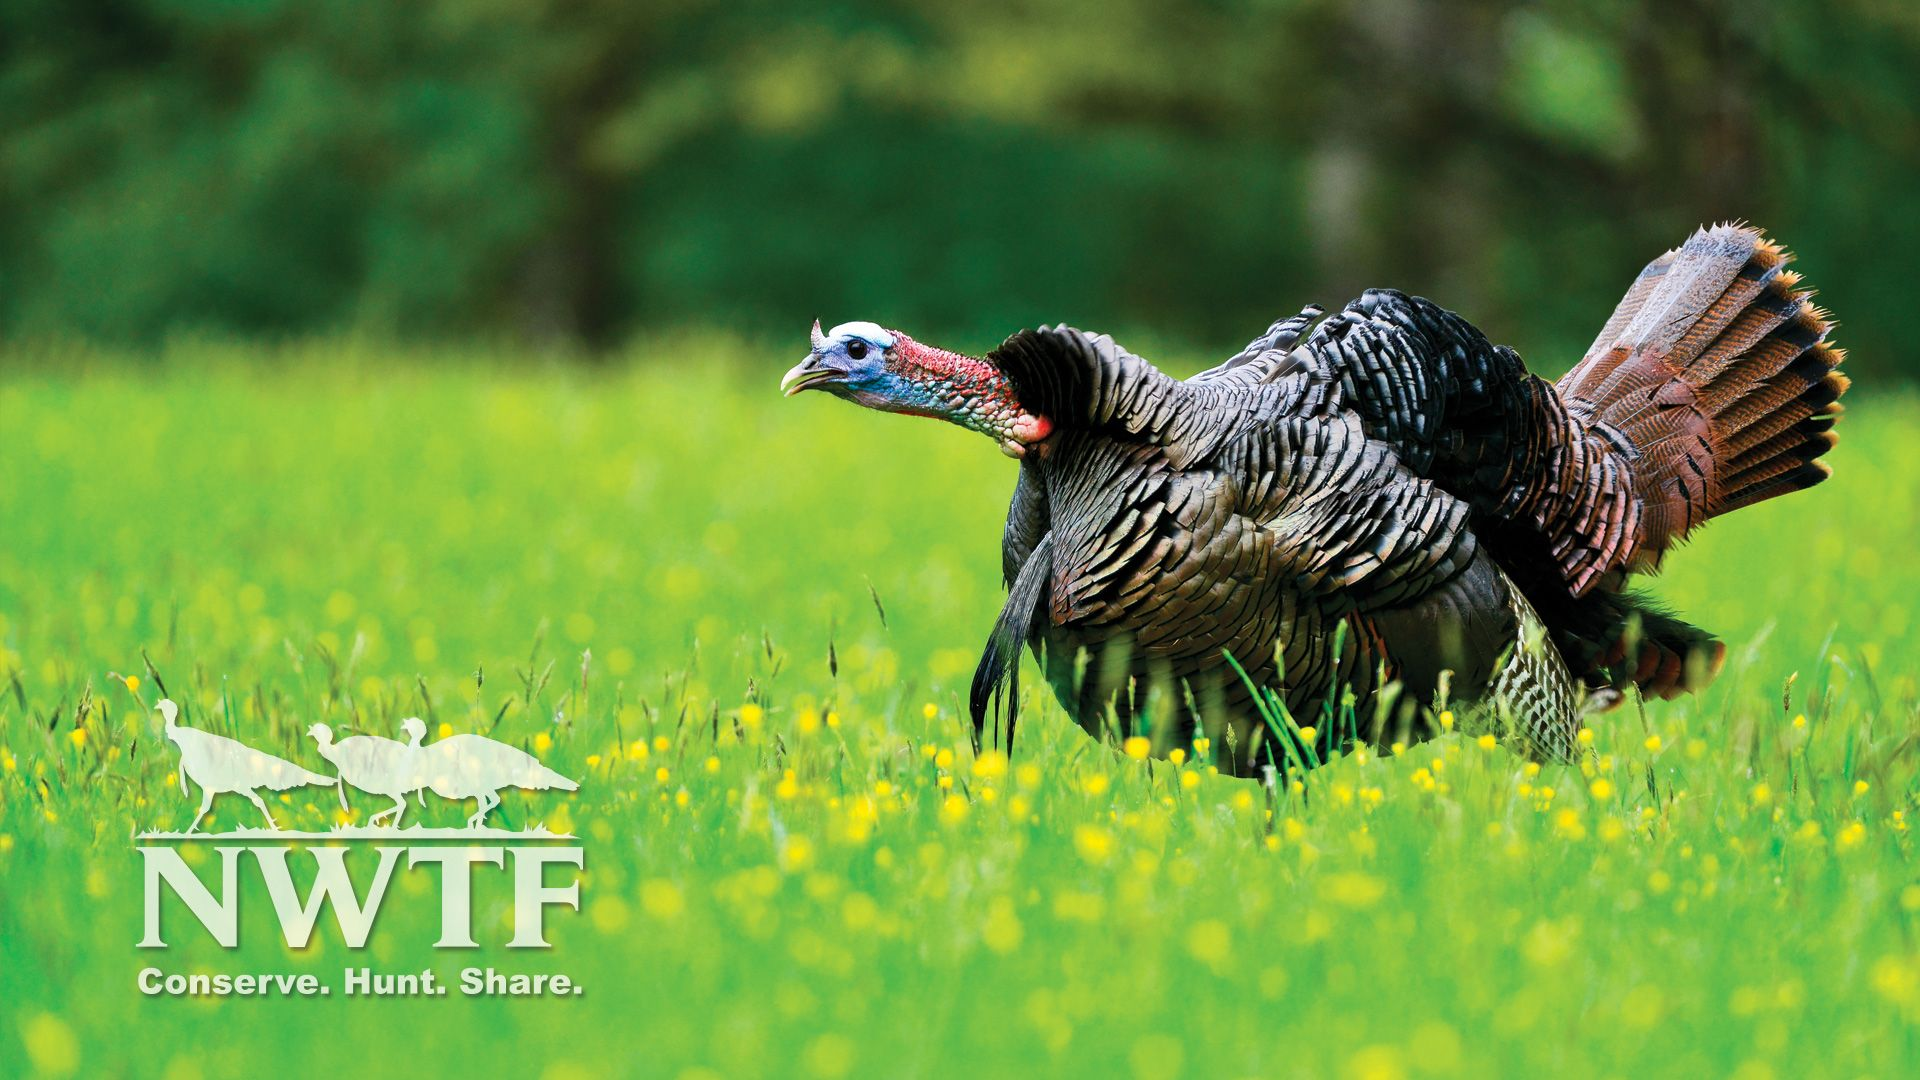 Turkey Hunting Wallpapers   Top Turkey Hunting Backgrounds 1920x1080